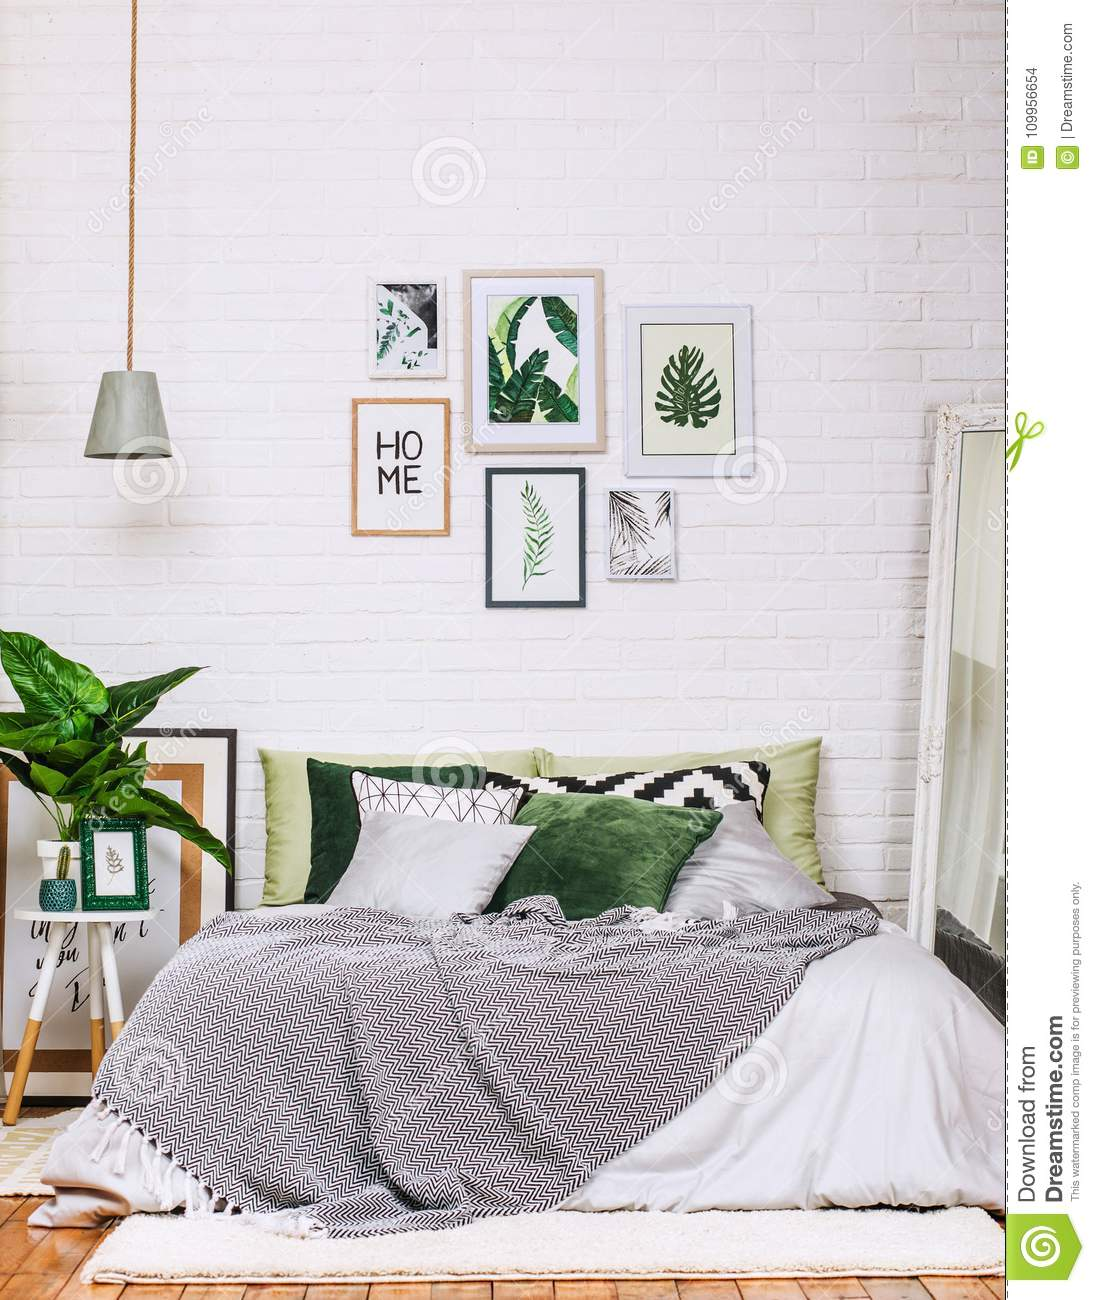 Bedroom Interior House Style Pattern White Green Stock Photo ...